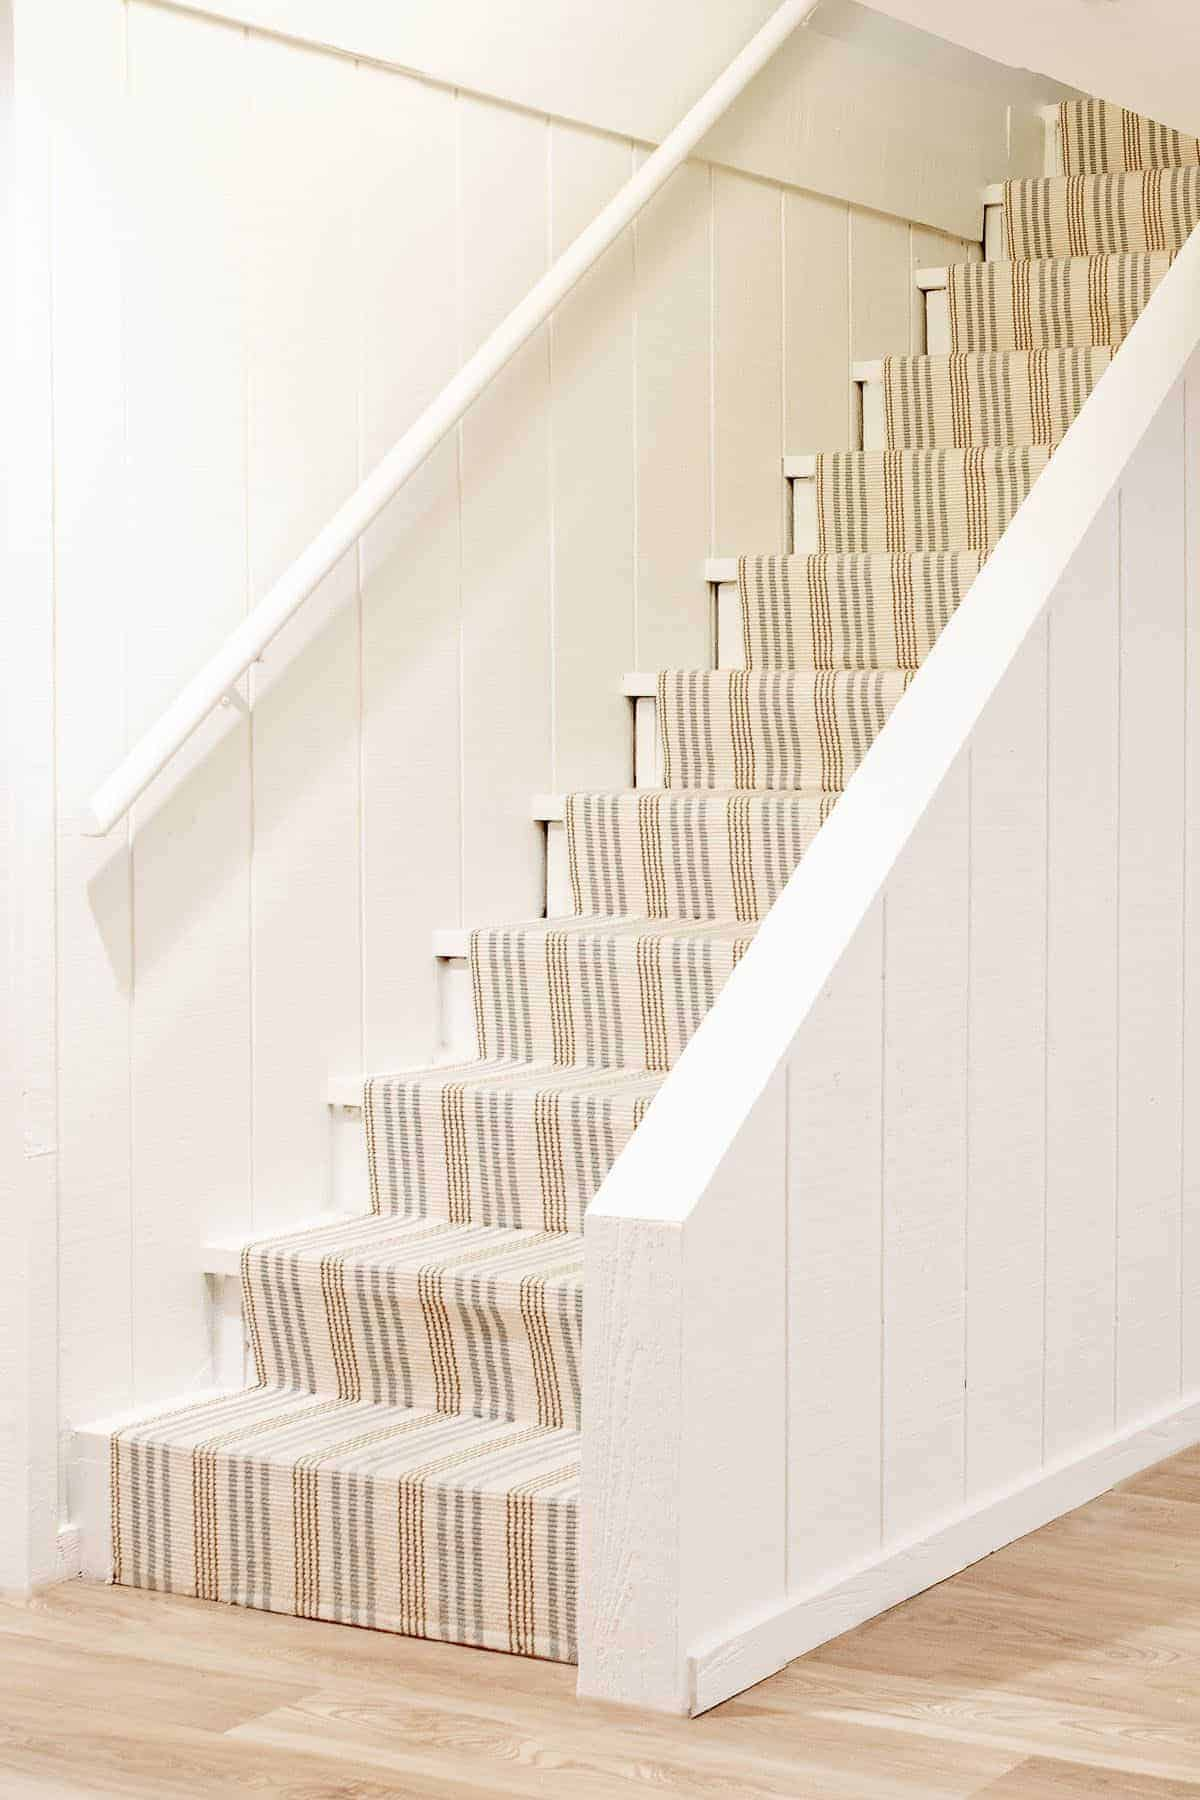 Basement stairs with a striped hallway and Benjamin Moore Swiss Coffee warm cream-colored on the walls.